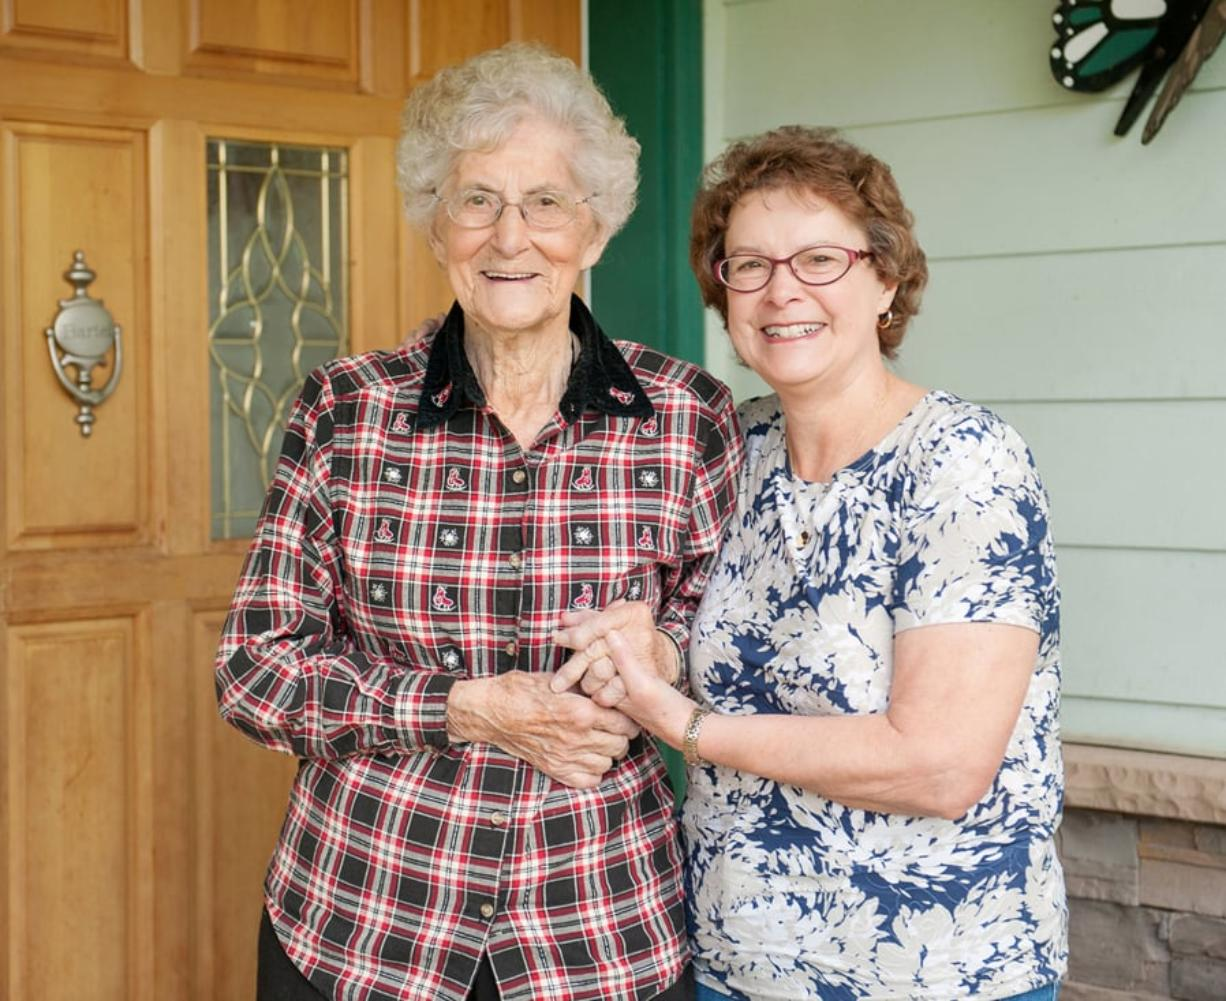 Diarist and former R.N. Bernice (Lorang) Bartel, left, and her niece, author Judith Jacobs Litchfield.